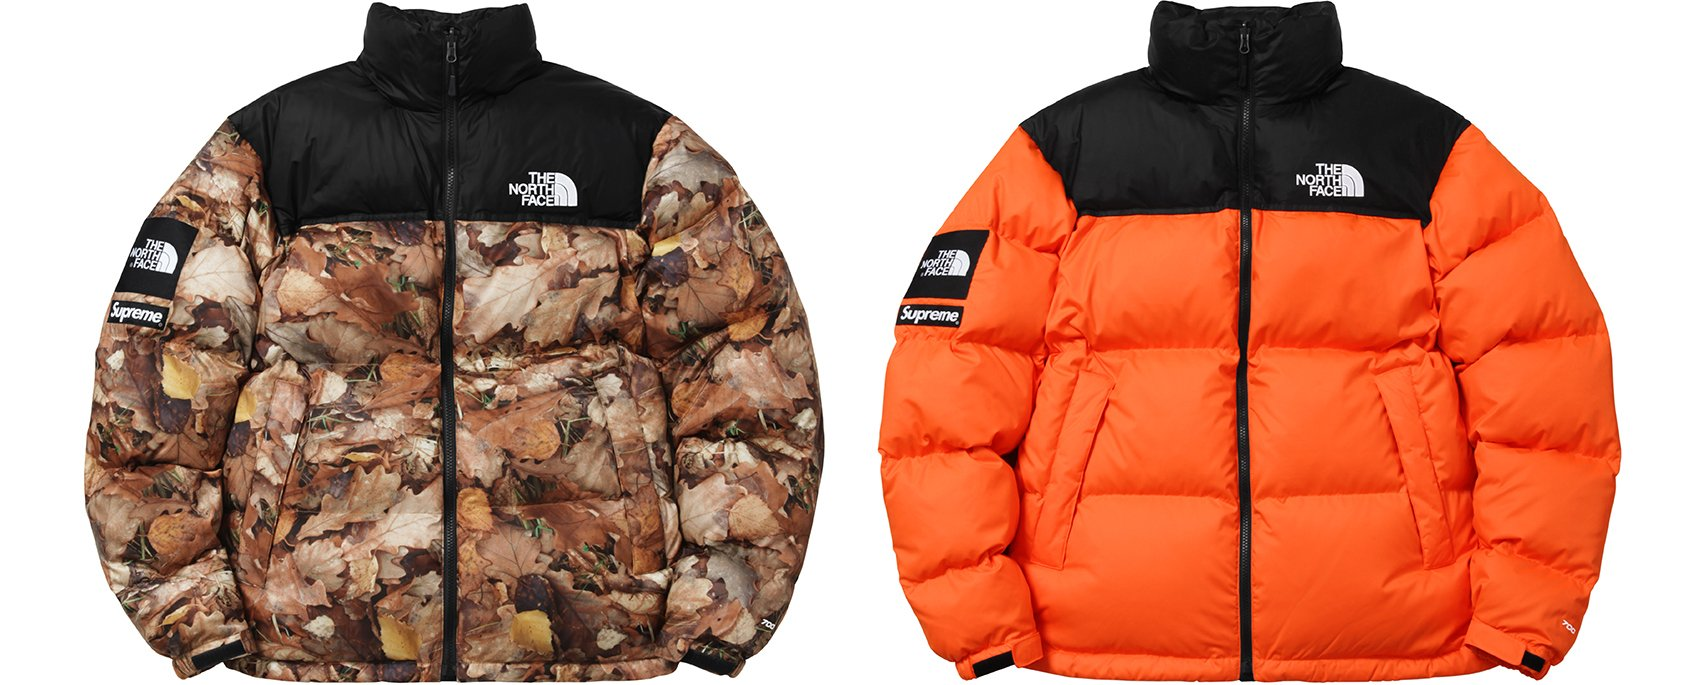 supreme-the-north-face-2016aw-collaboration-collection-20161119